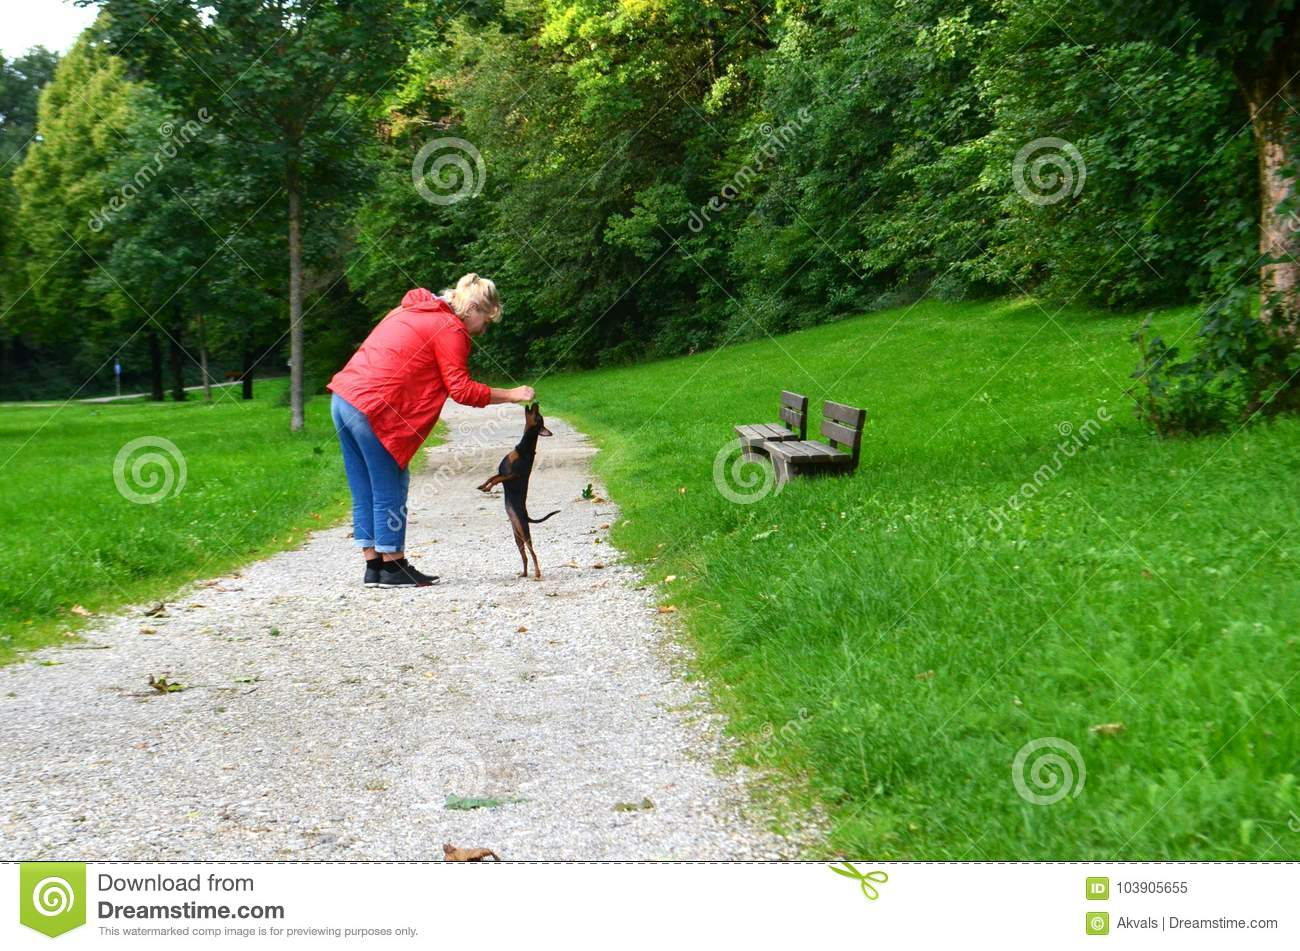 A 60+ Senior Woman Walking Her Pet Dog In A City Park And